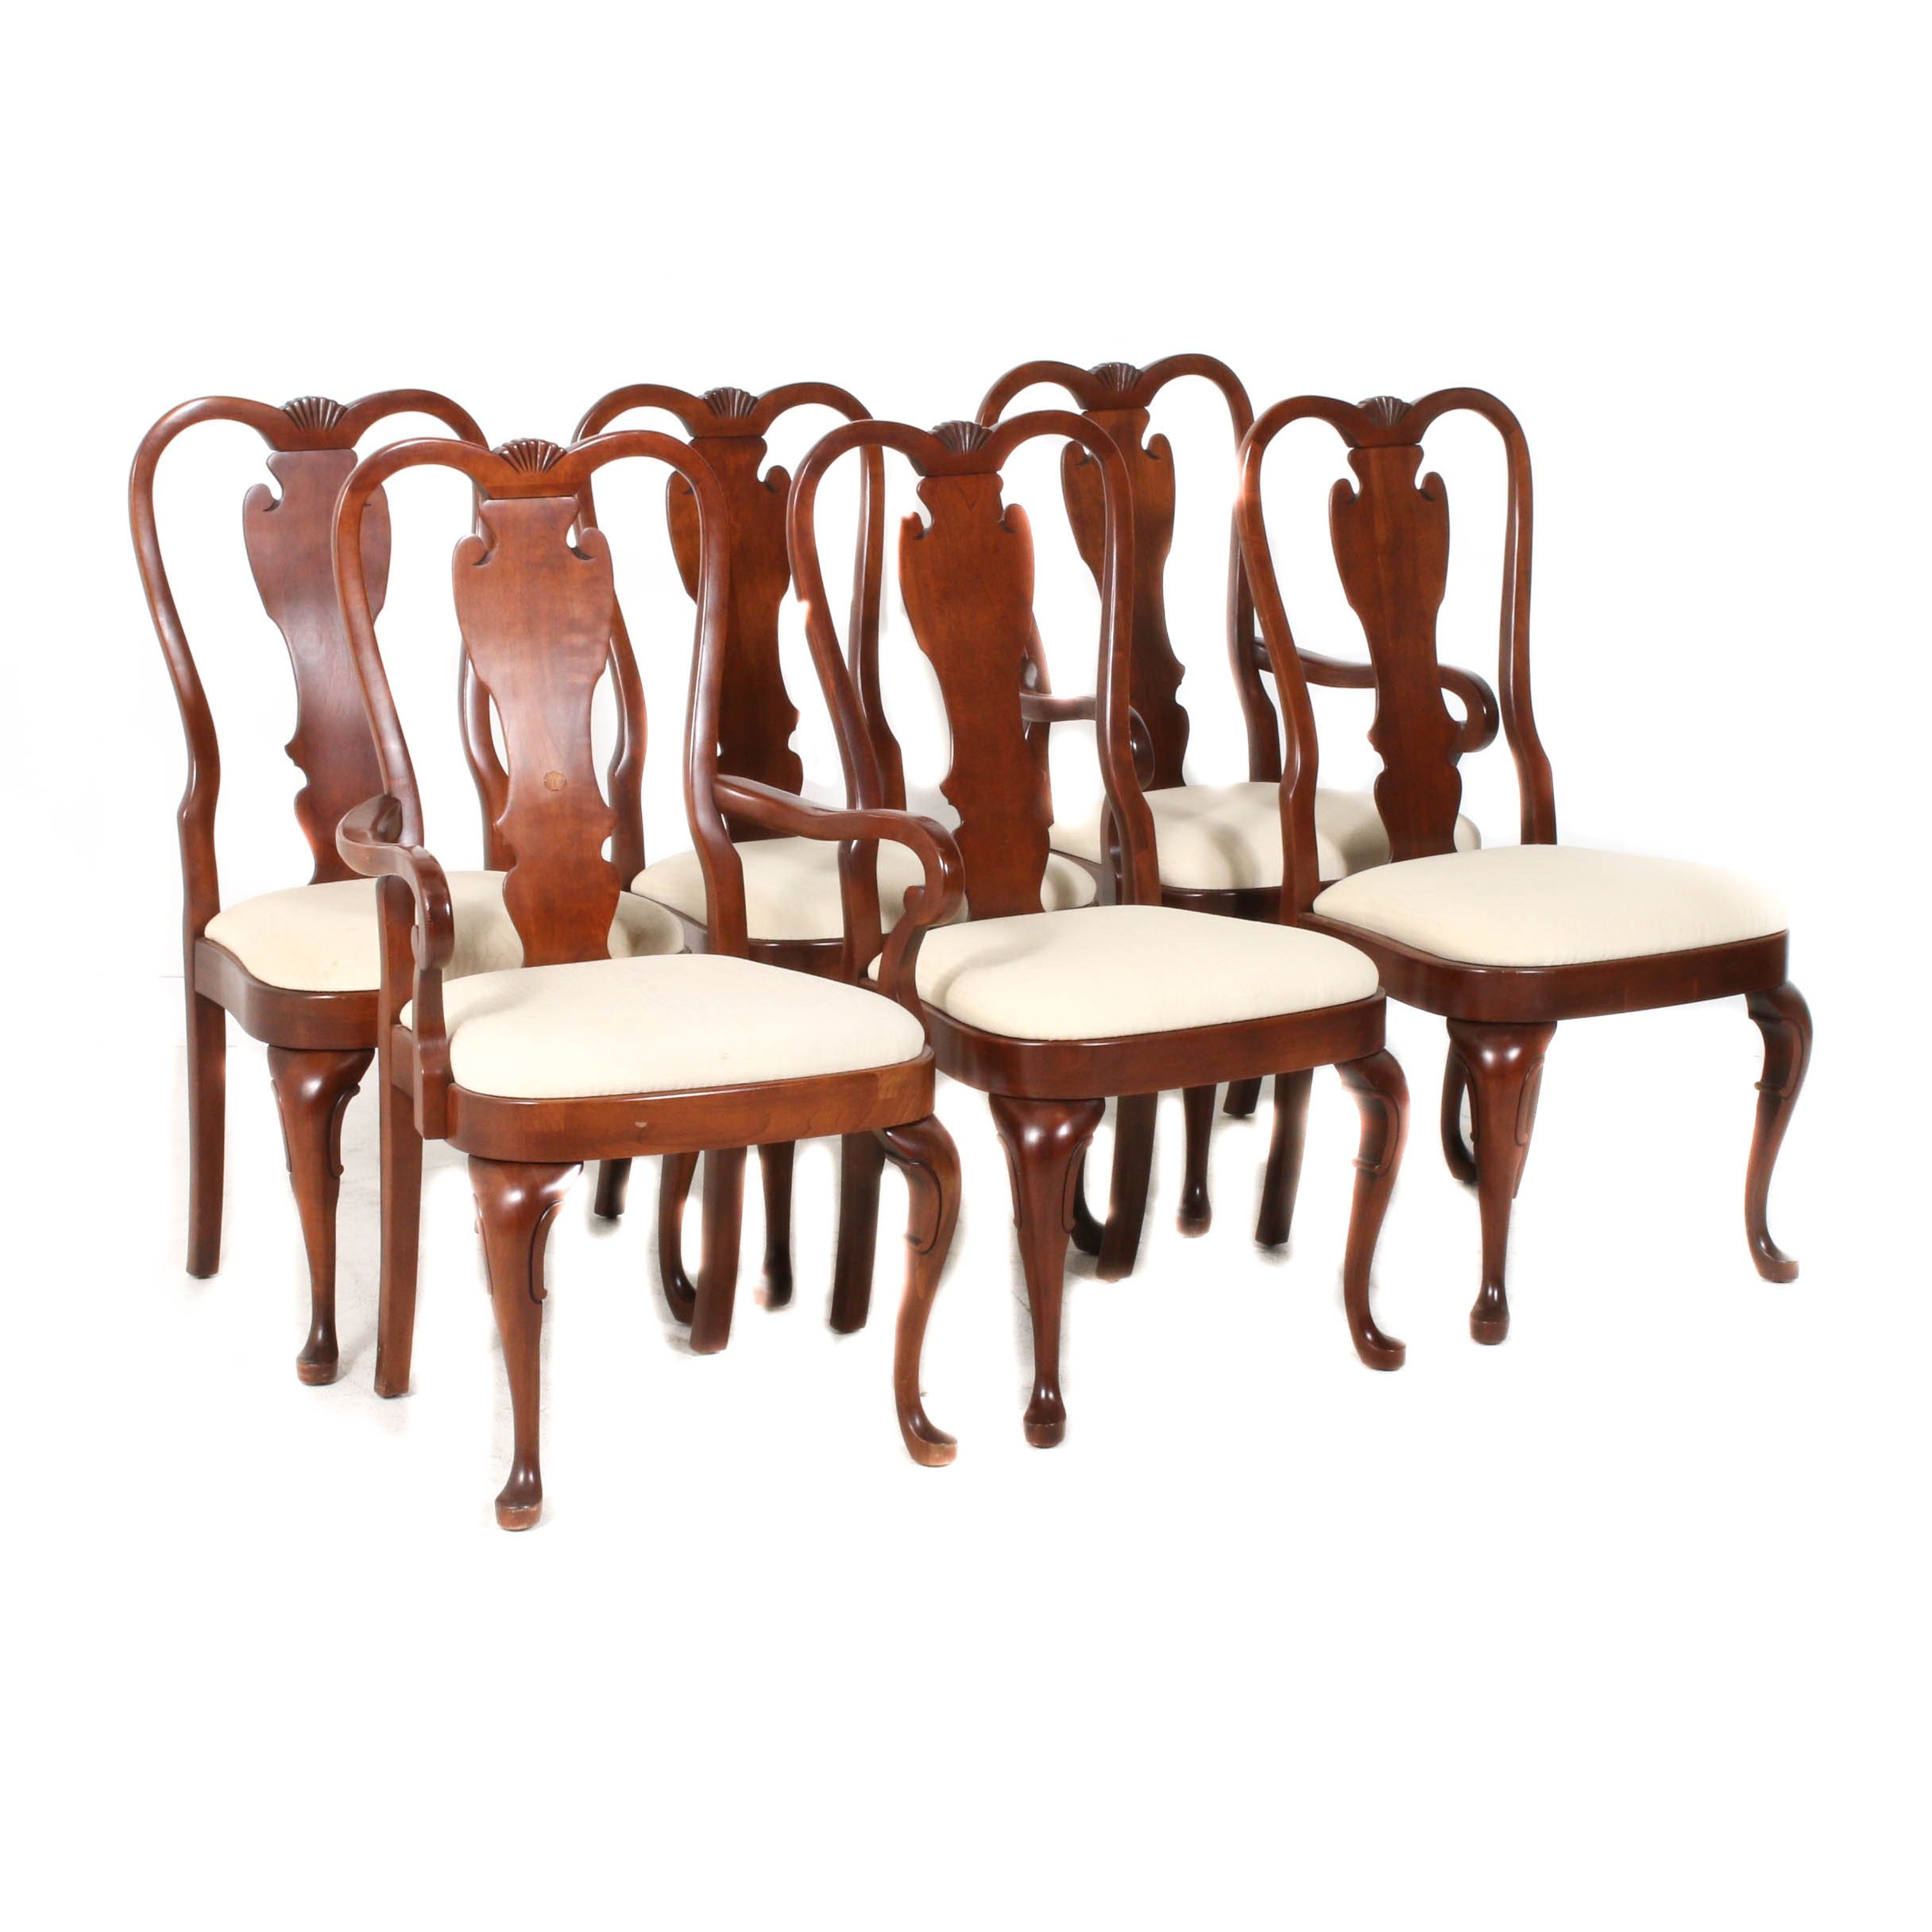 Bragg Furniture Upholstered Wood Dining Chairs, circa 1988